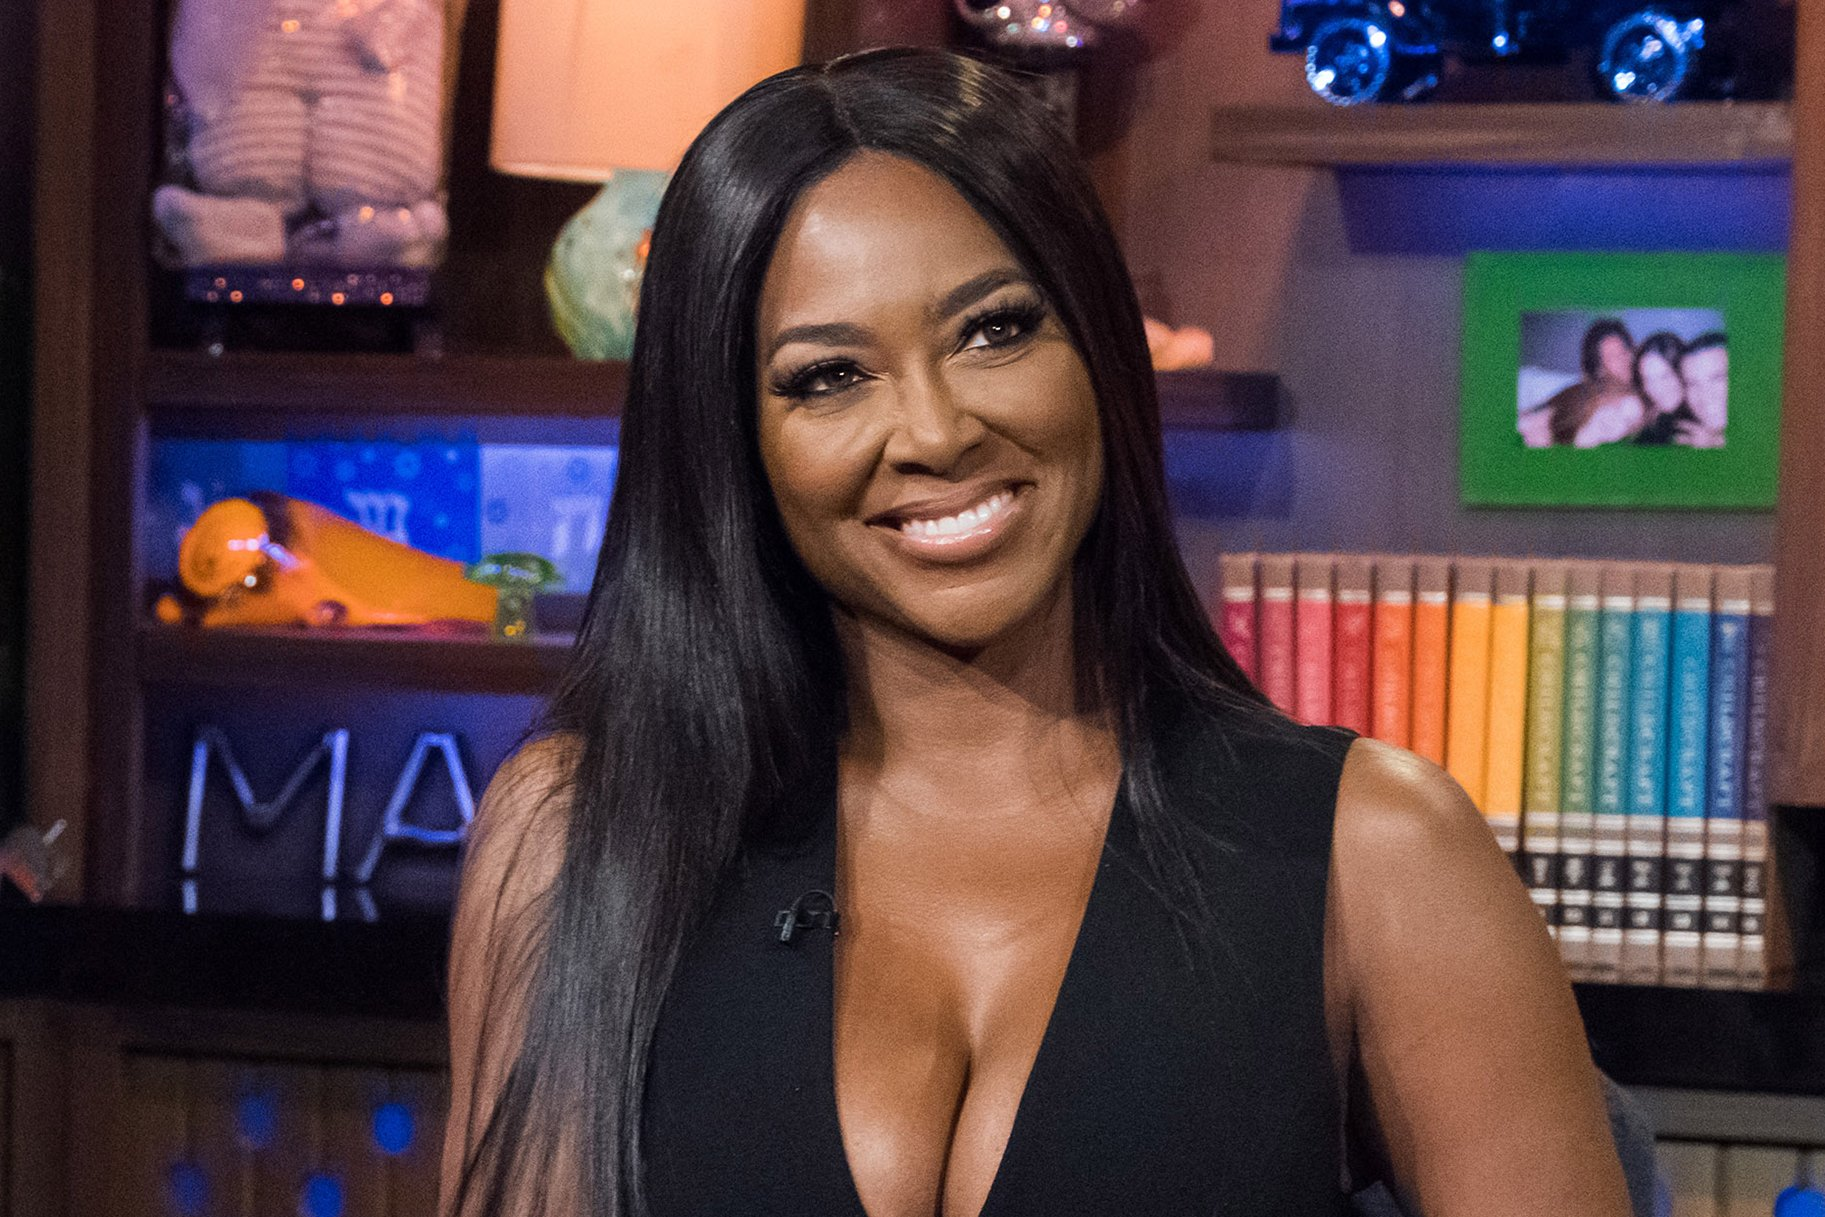 Kenya Moore's Latest Photo Post Her Meeting With Wendy Williams Has Fans Praising Her Beauty